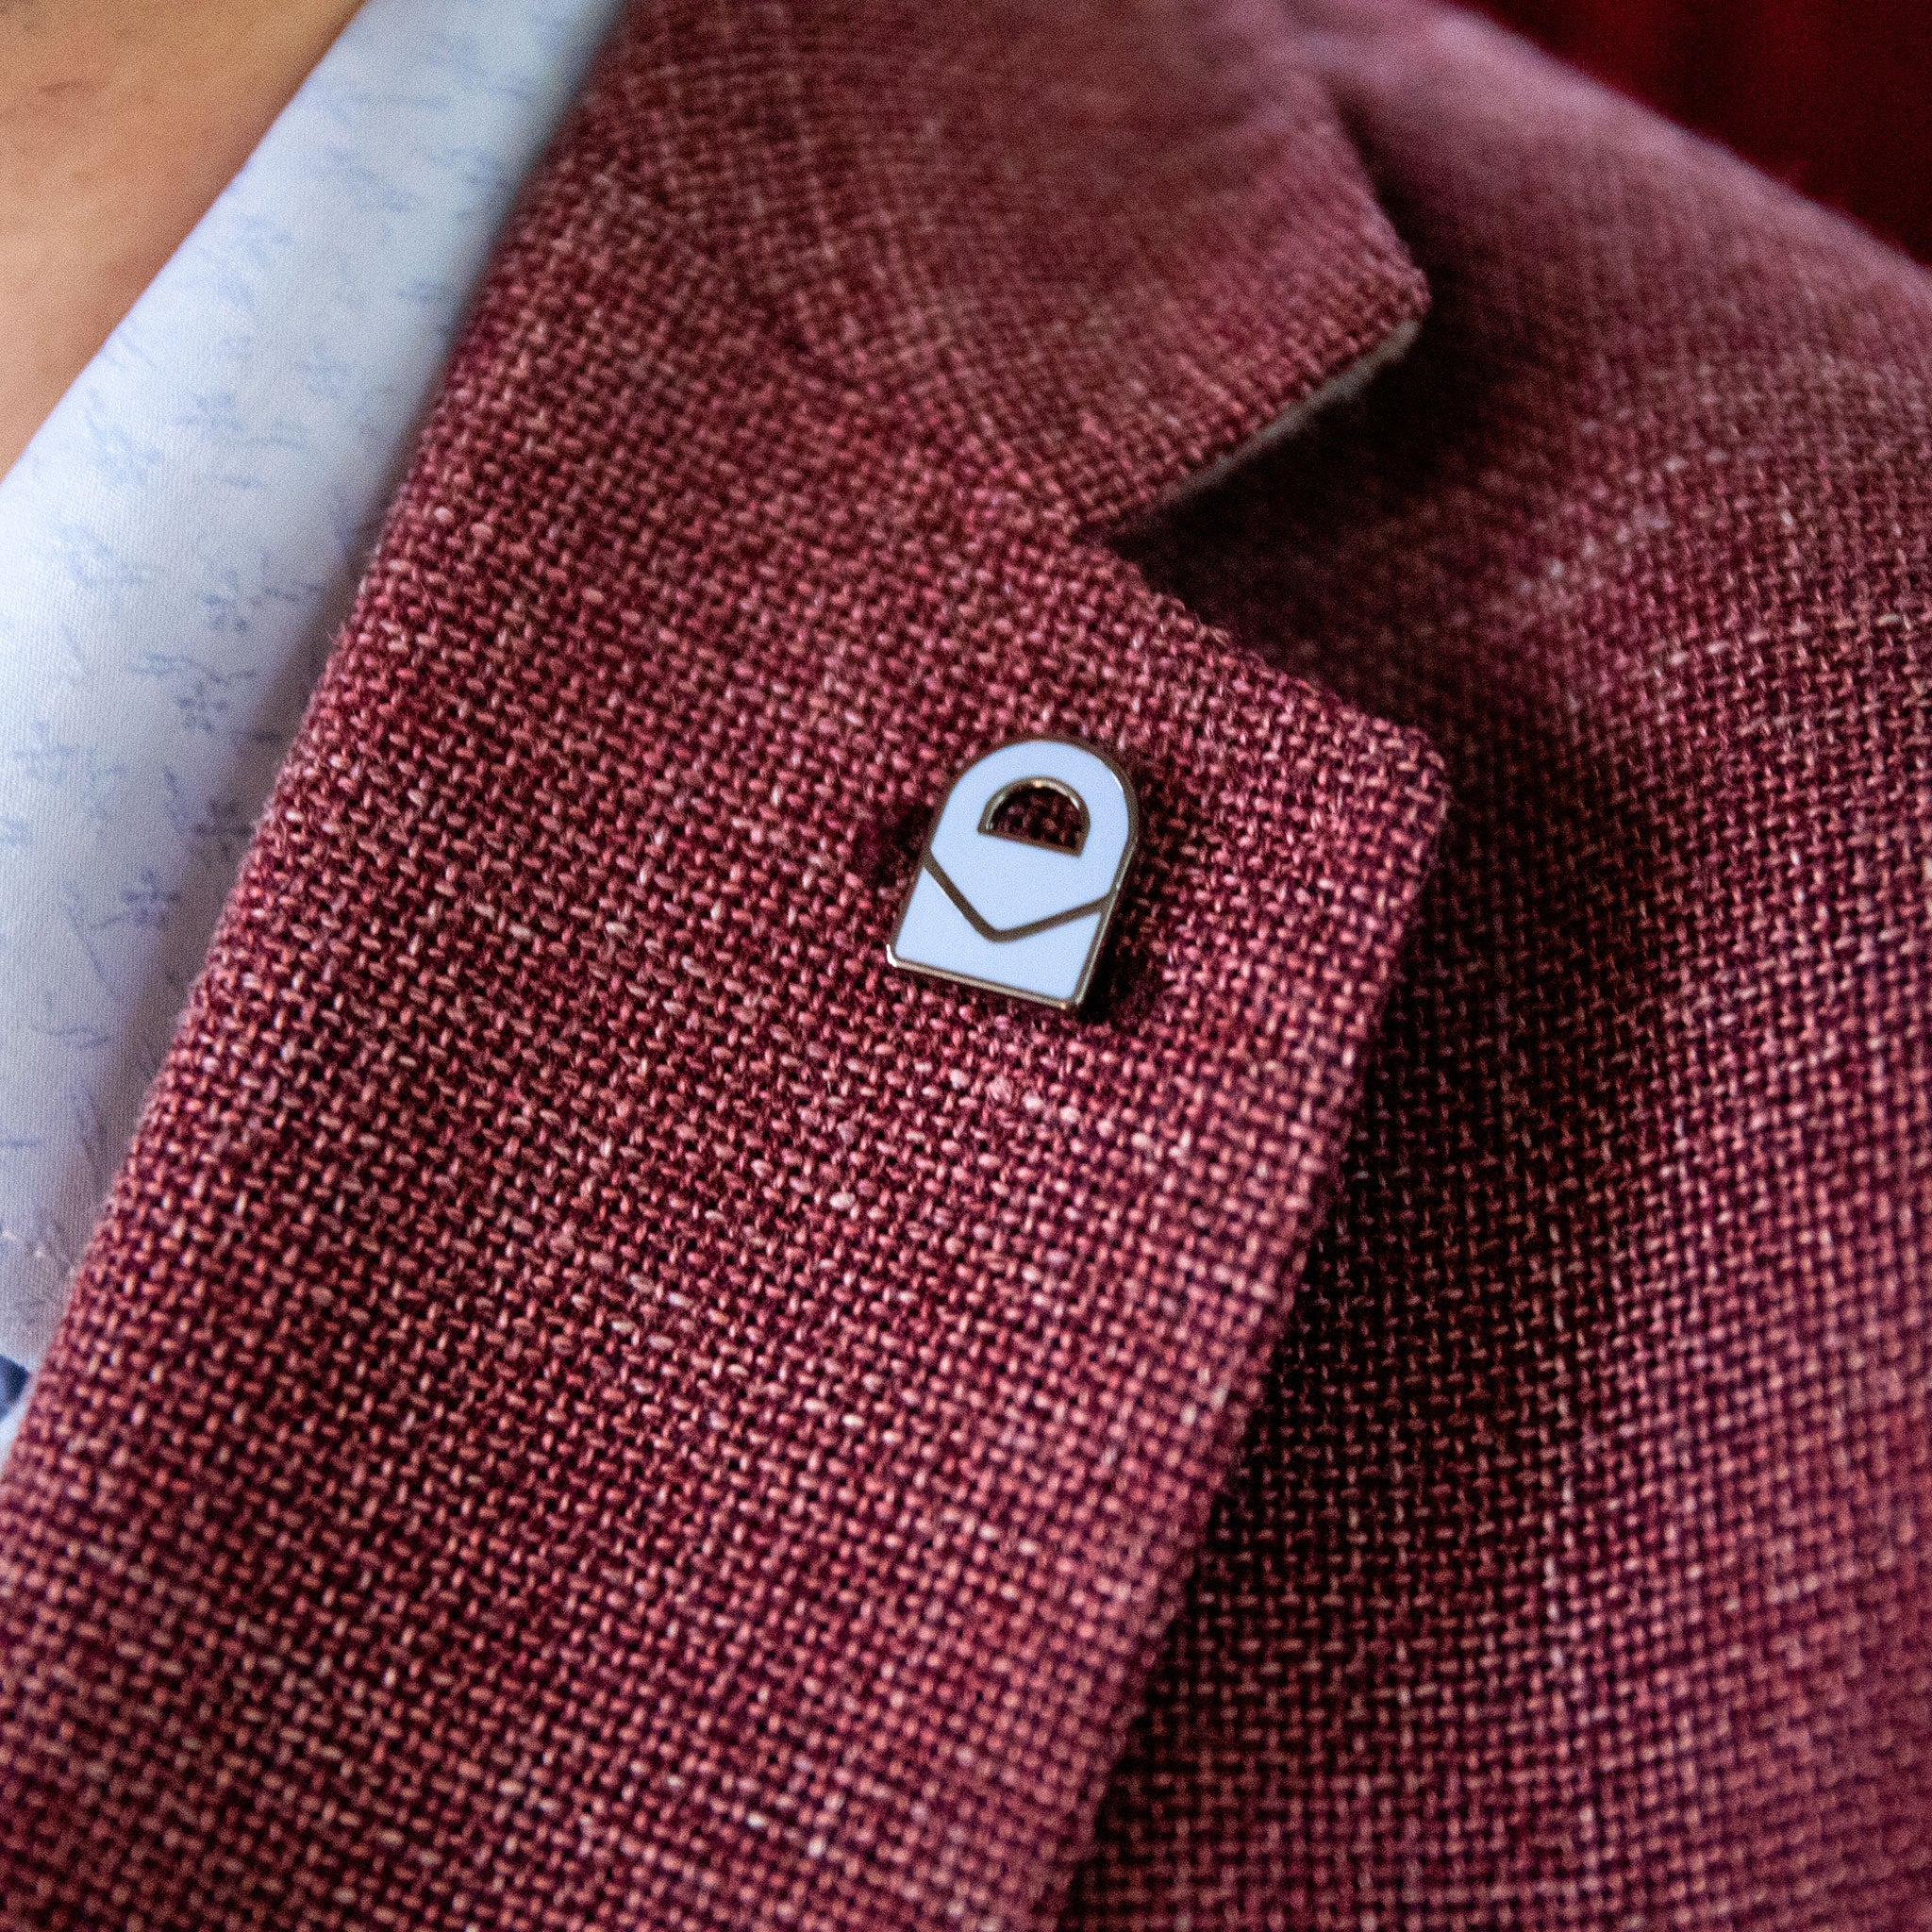 ProtonMail Metal Pin